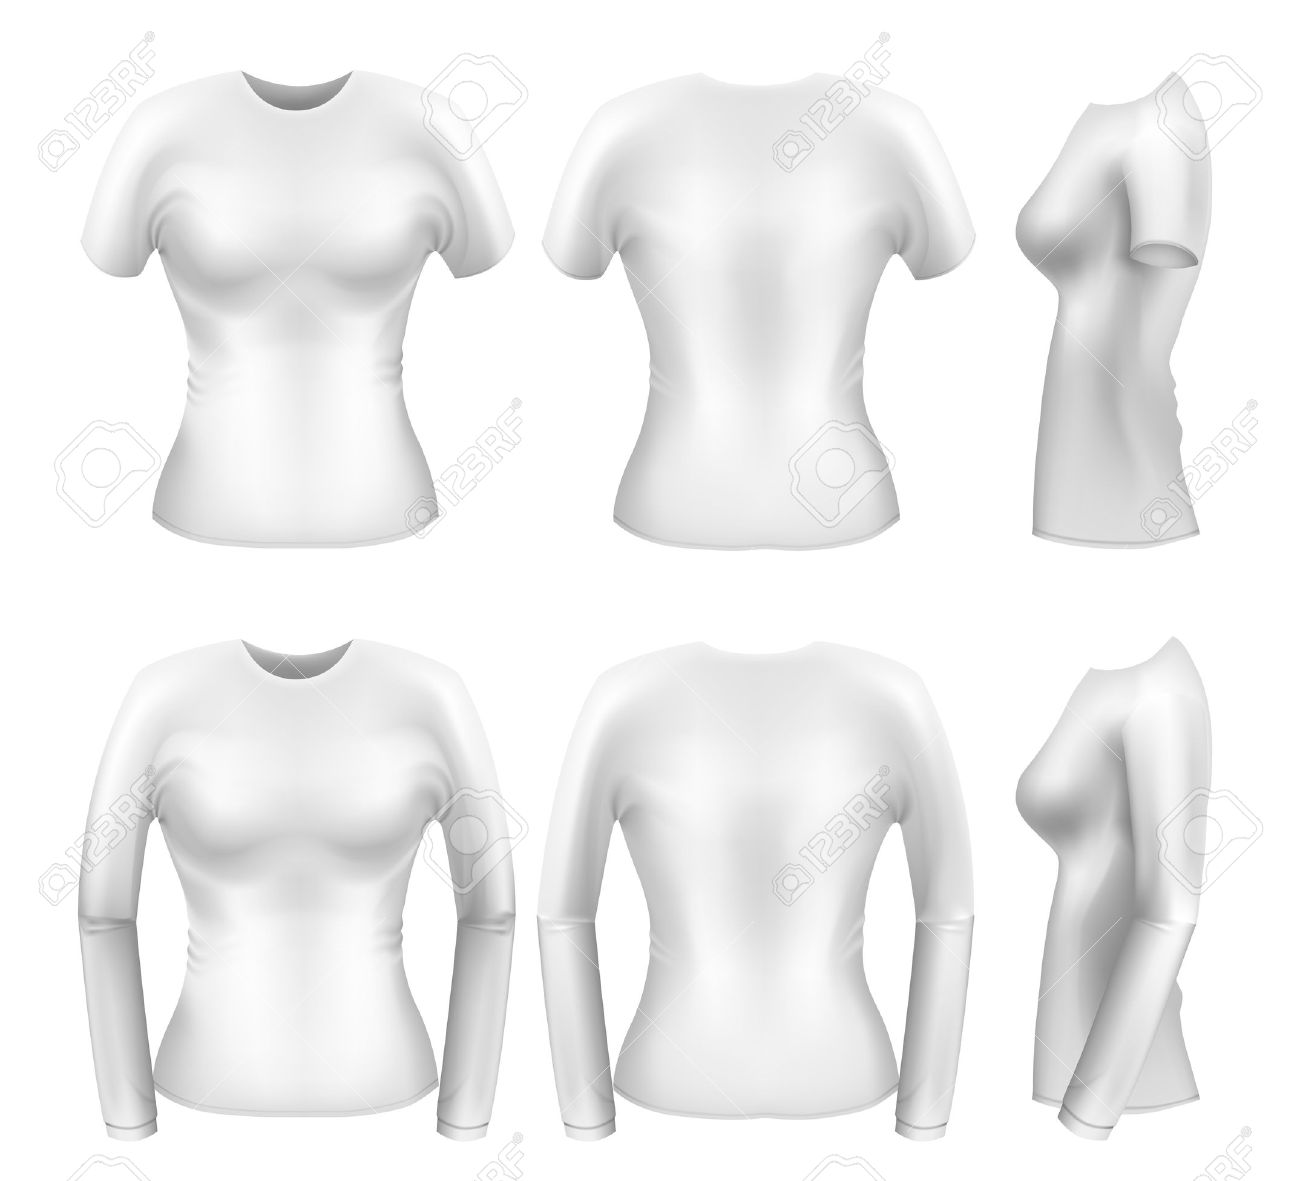 White womens t-shirt templates from all angles Stock Vector - 9062336